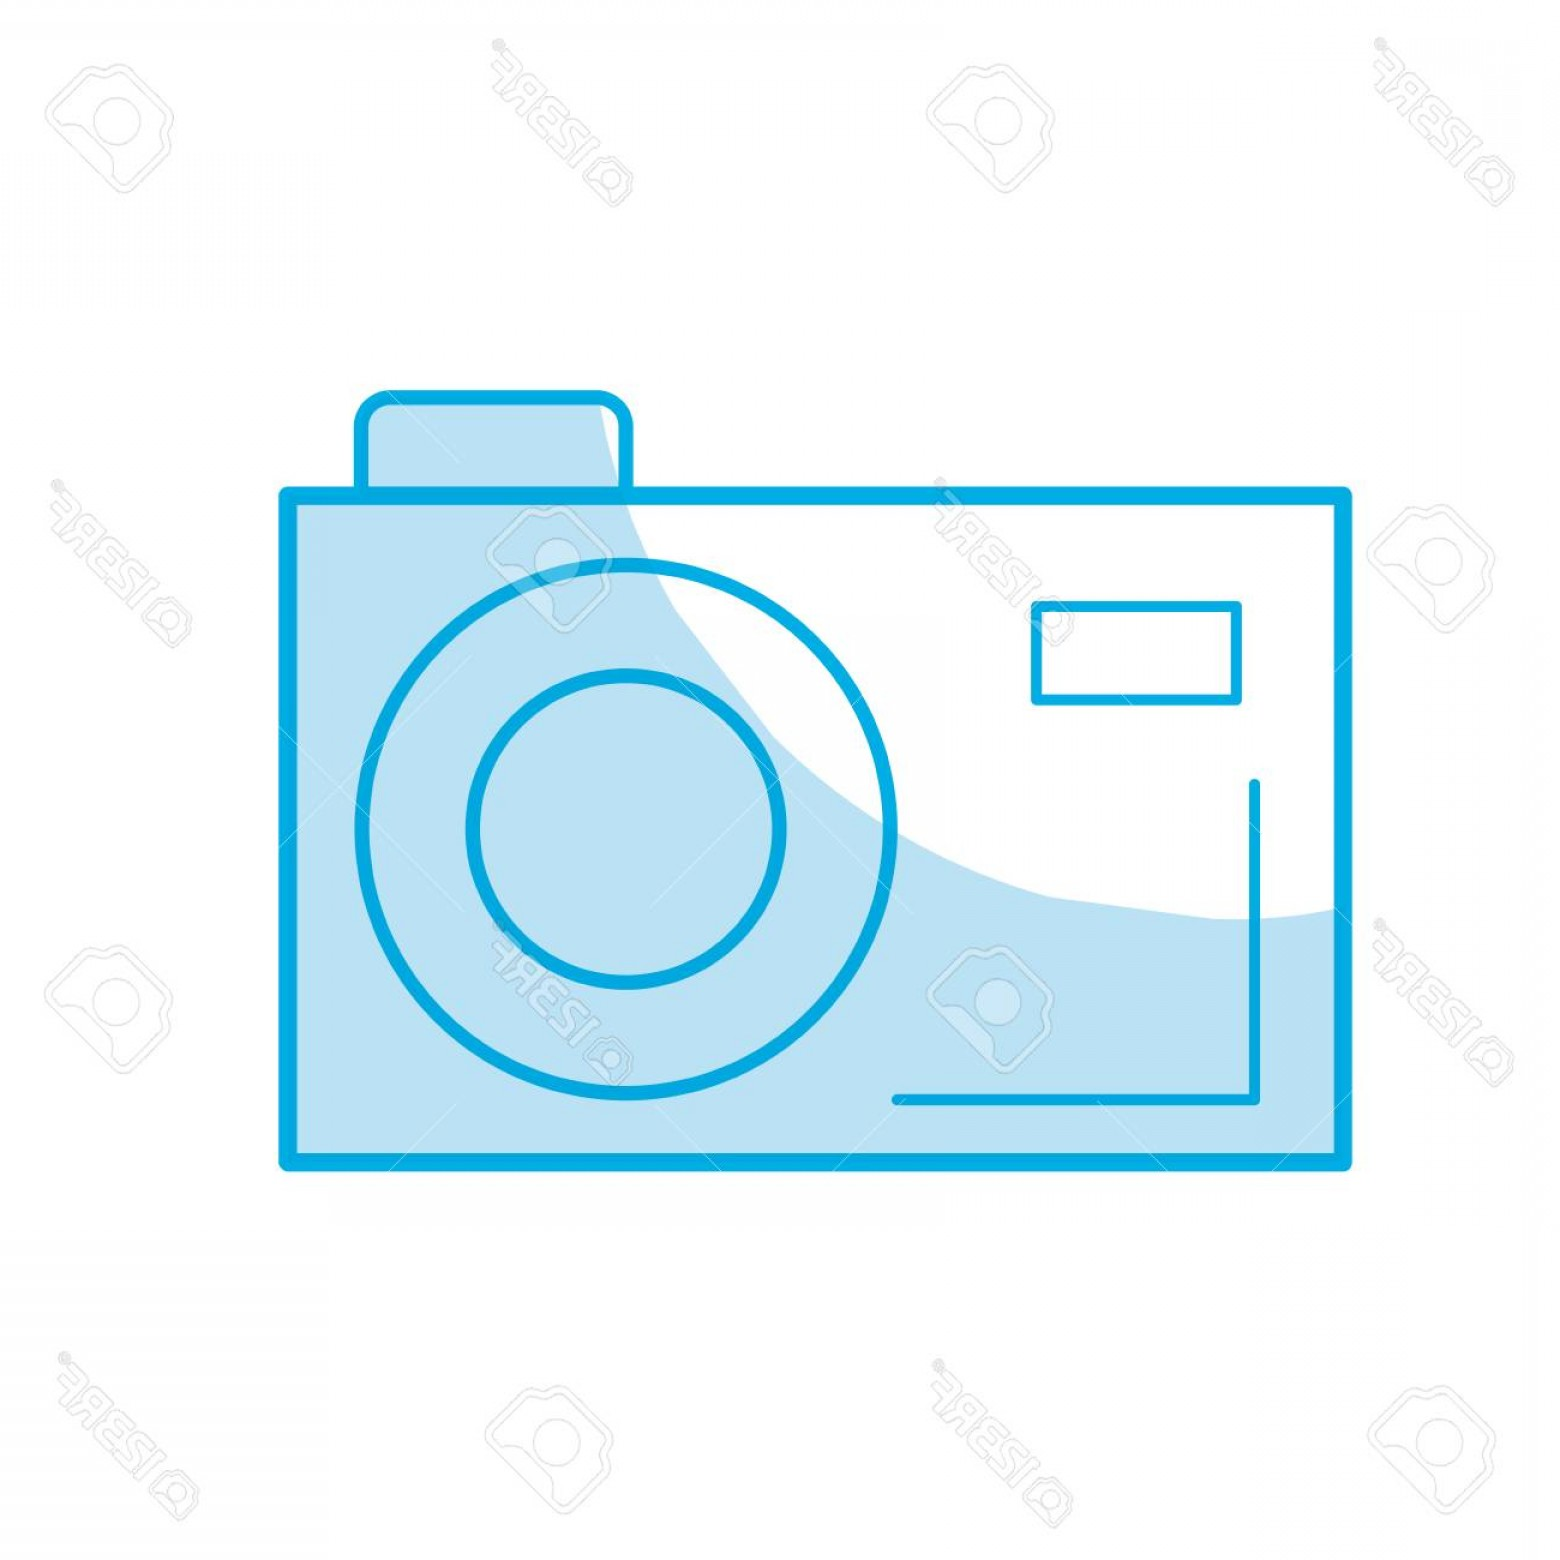 Digital Vector Silhouette: Photostock Vector Silhouette Digital Camera To Capture The Nice Moments